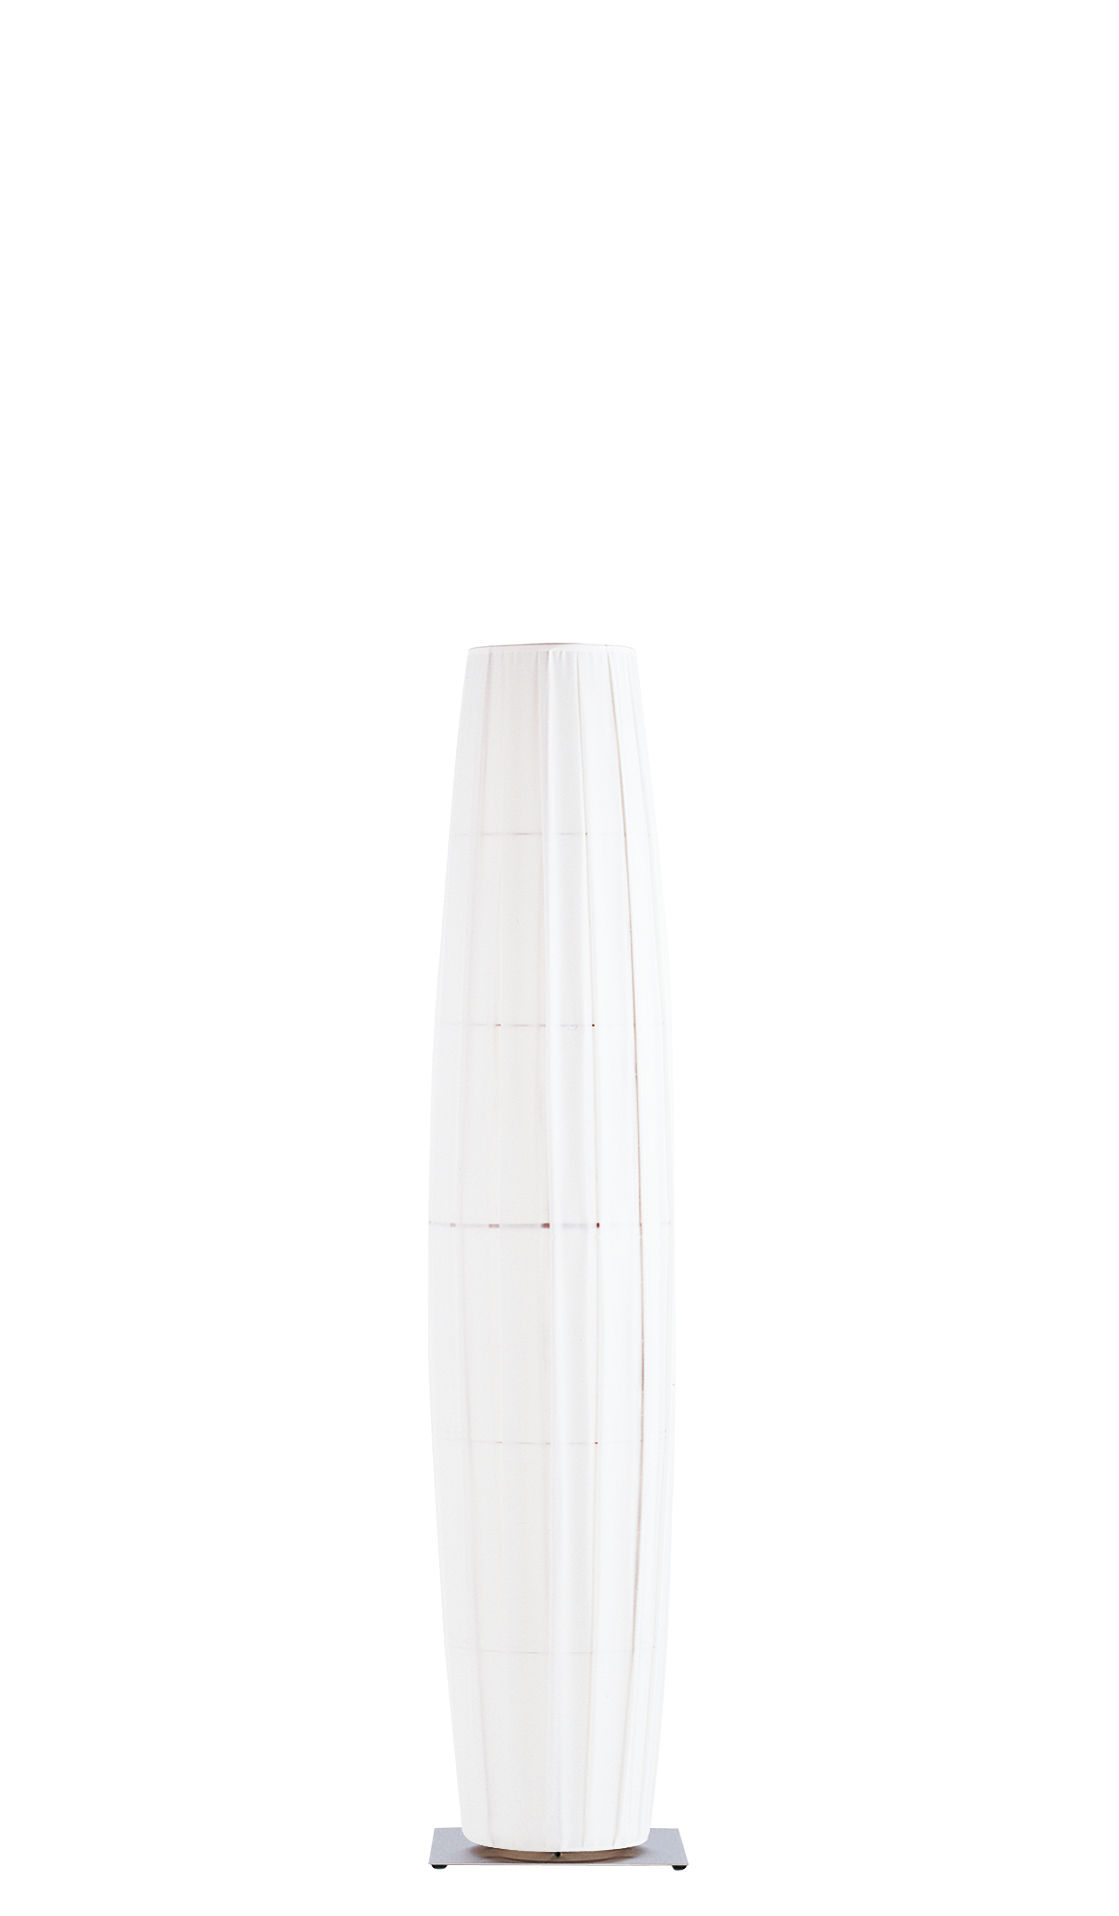 Lighting - Floor lamps - Colonne Floor lamp - H 190 cm - 3 colours LEDs by Dix Heures Dix - White/Multicolored light - Brushed stainless steel base - Brushed steel, Polyester fabric